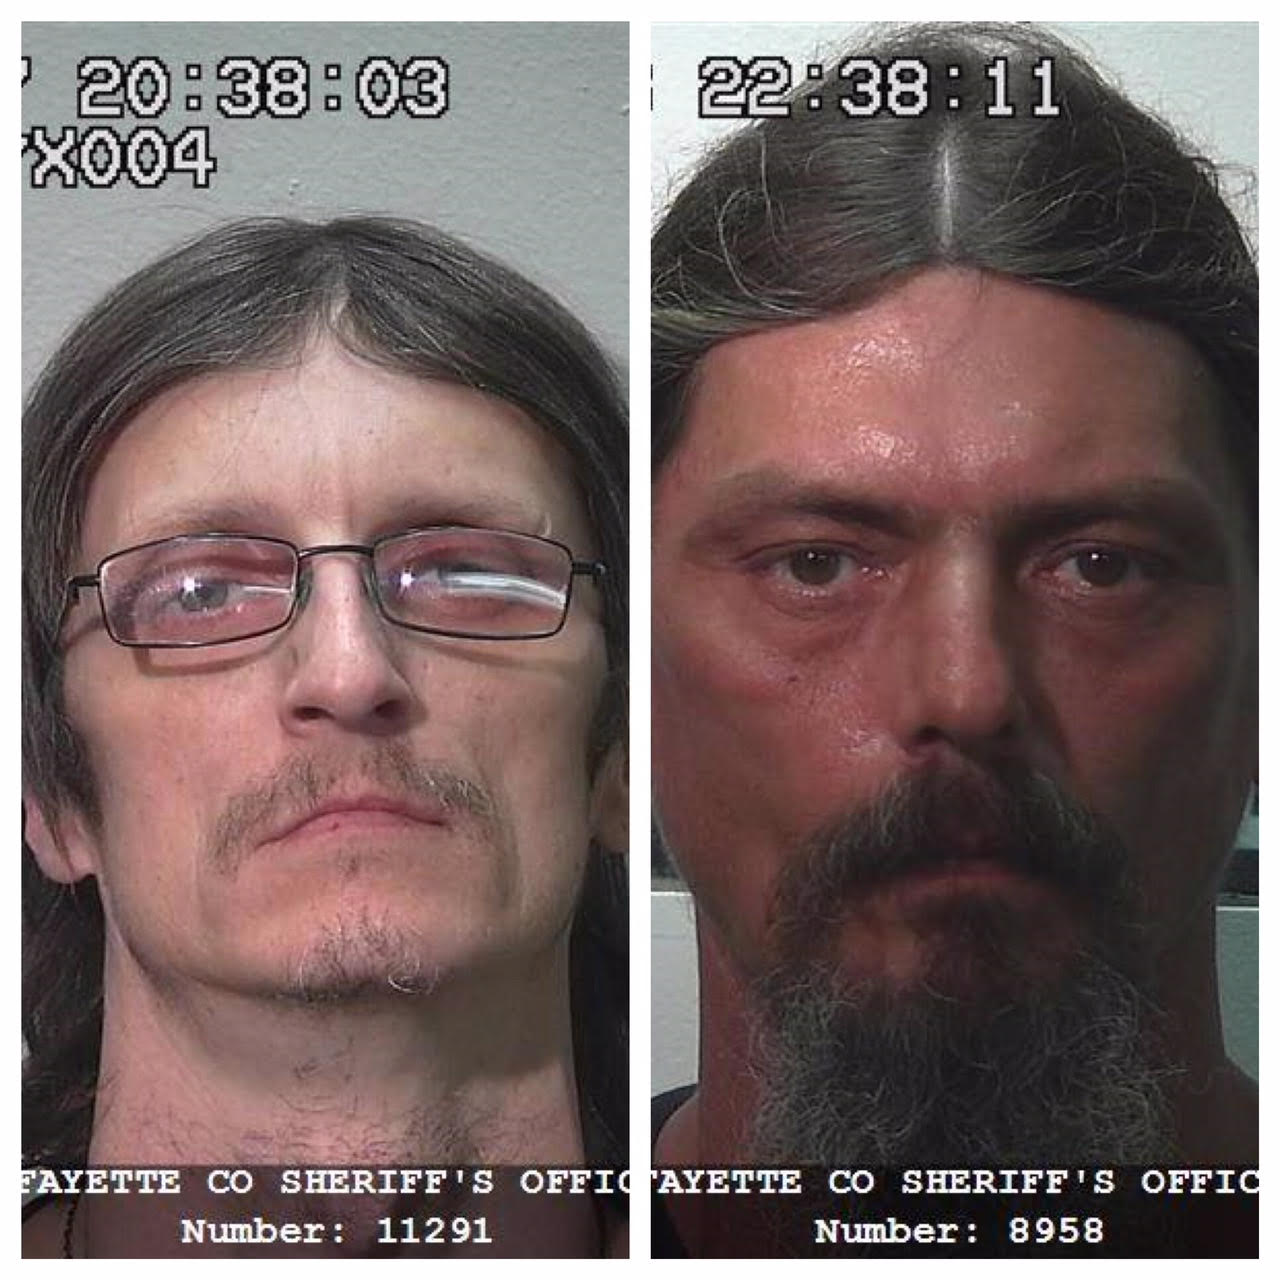 Vandalia Men Officially Charged With Burglary in Fayette County Court